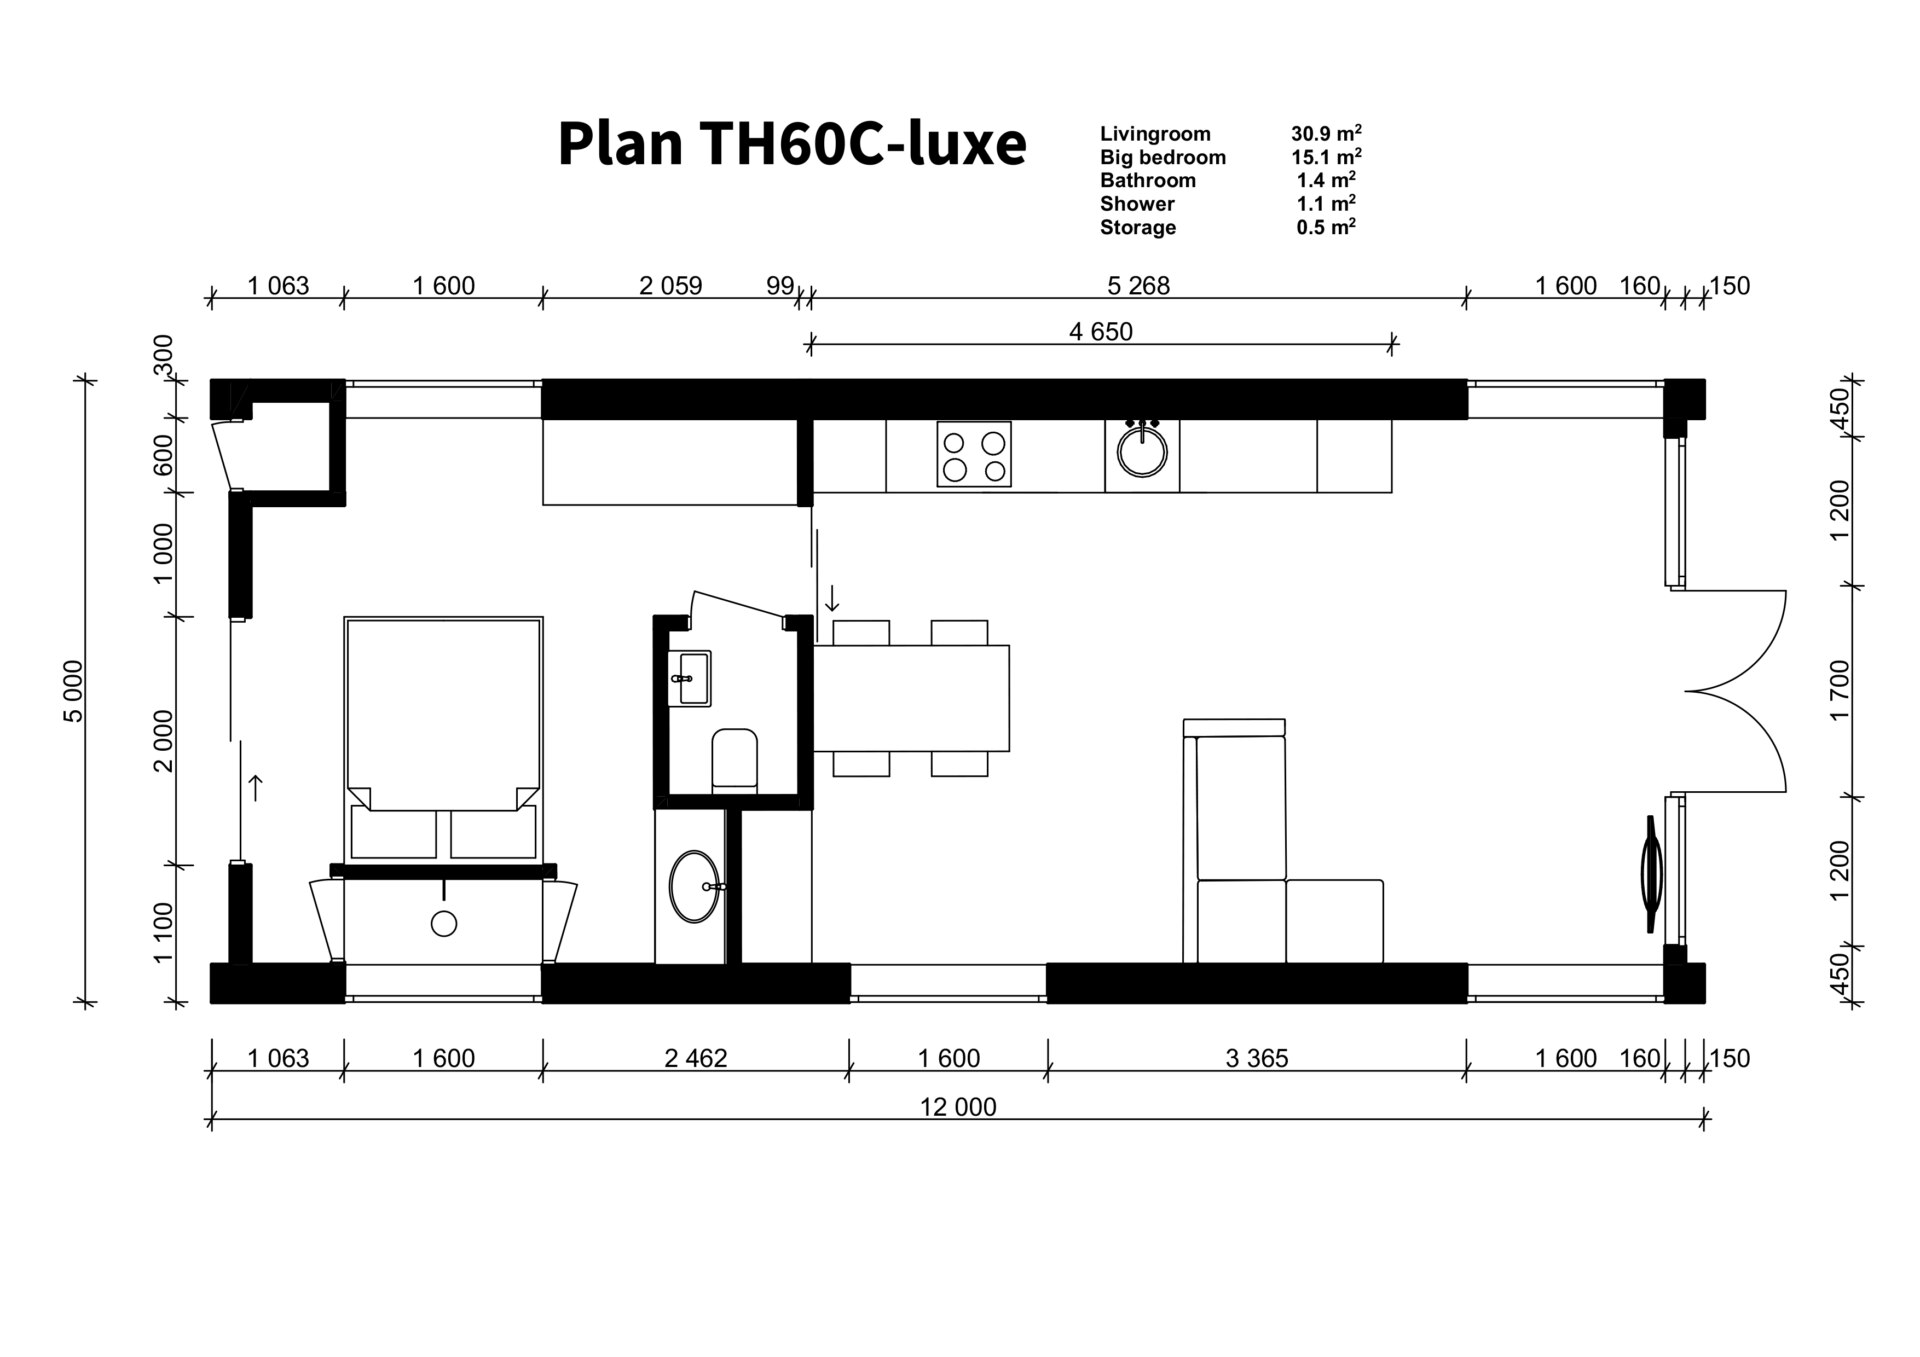 TH60C - luxe plan